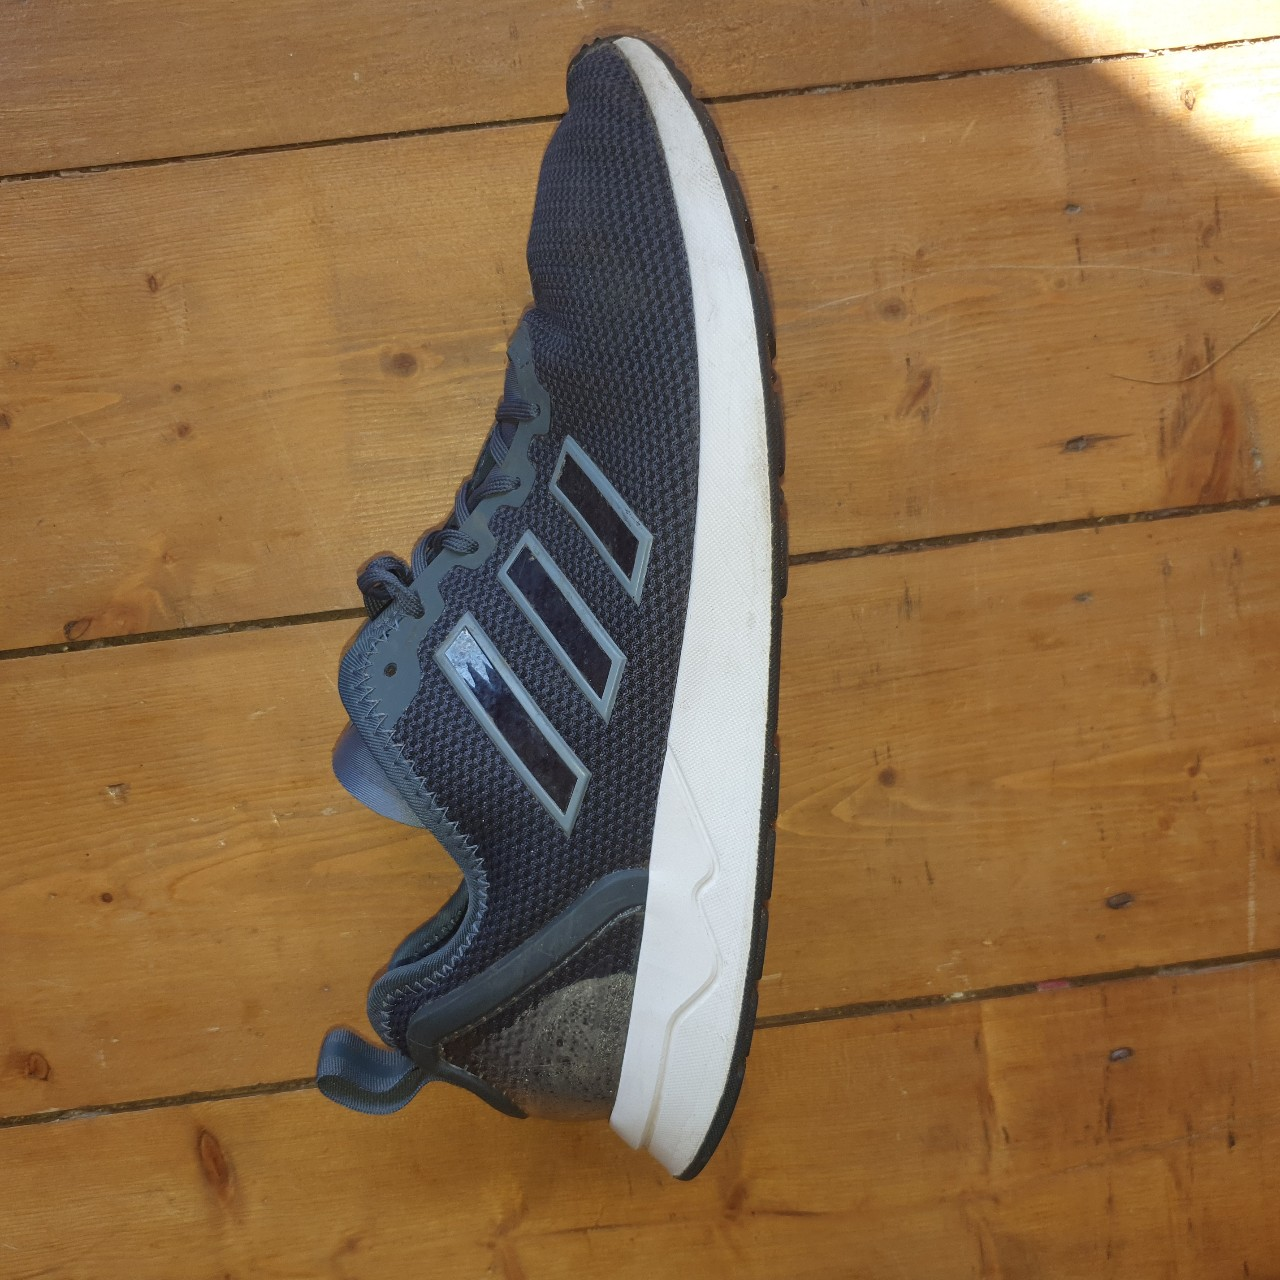 Adidas Trainers Size 10 Mens Condition